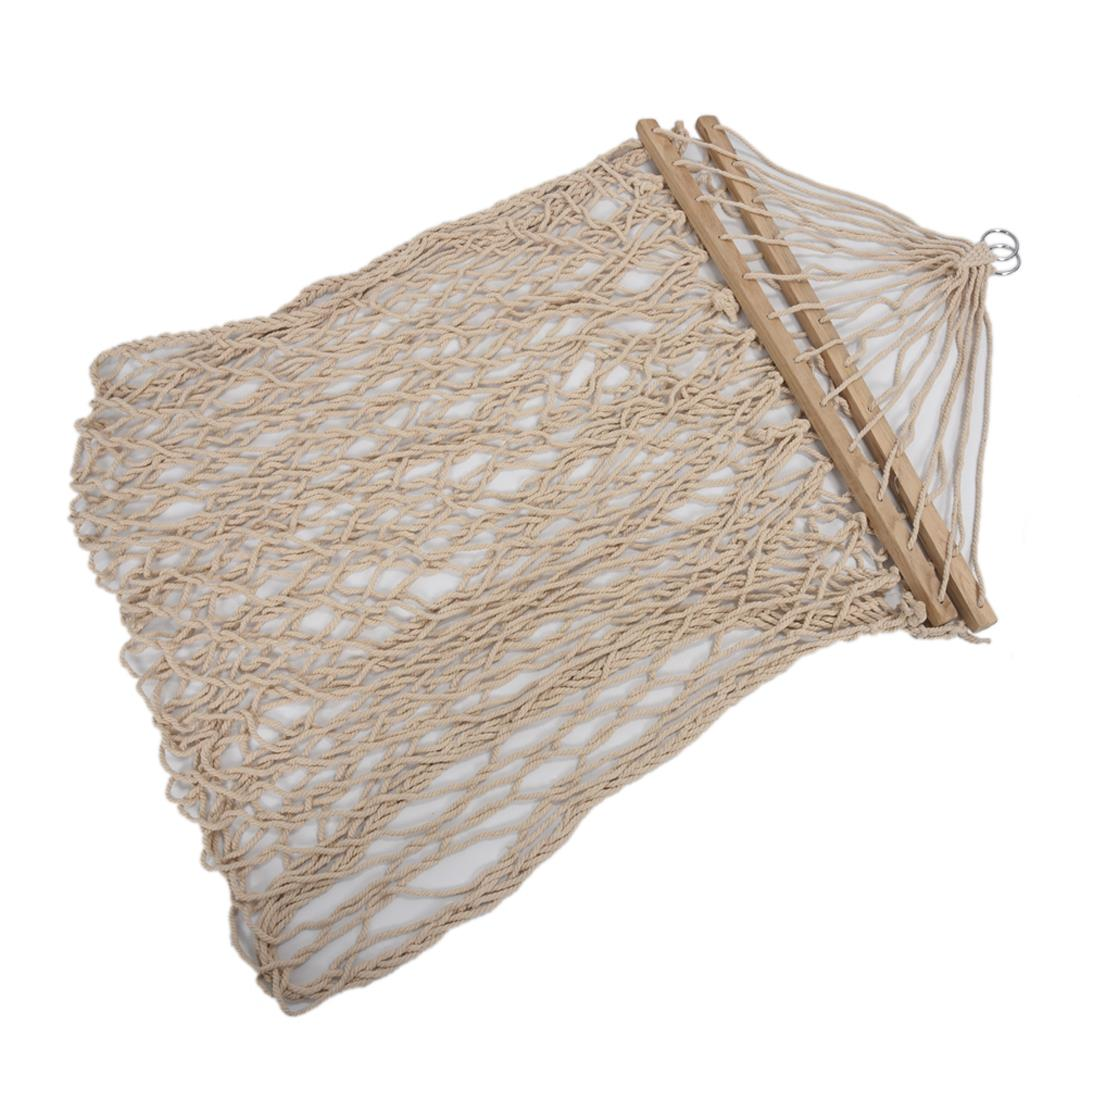 Hot Sale White Cotton Rope Swing Hammock Hanging on the Porch or on a Beach anouk live on the beach scheveningen